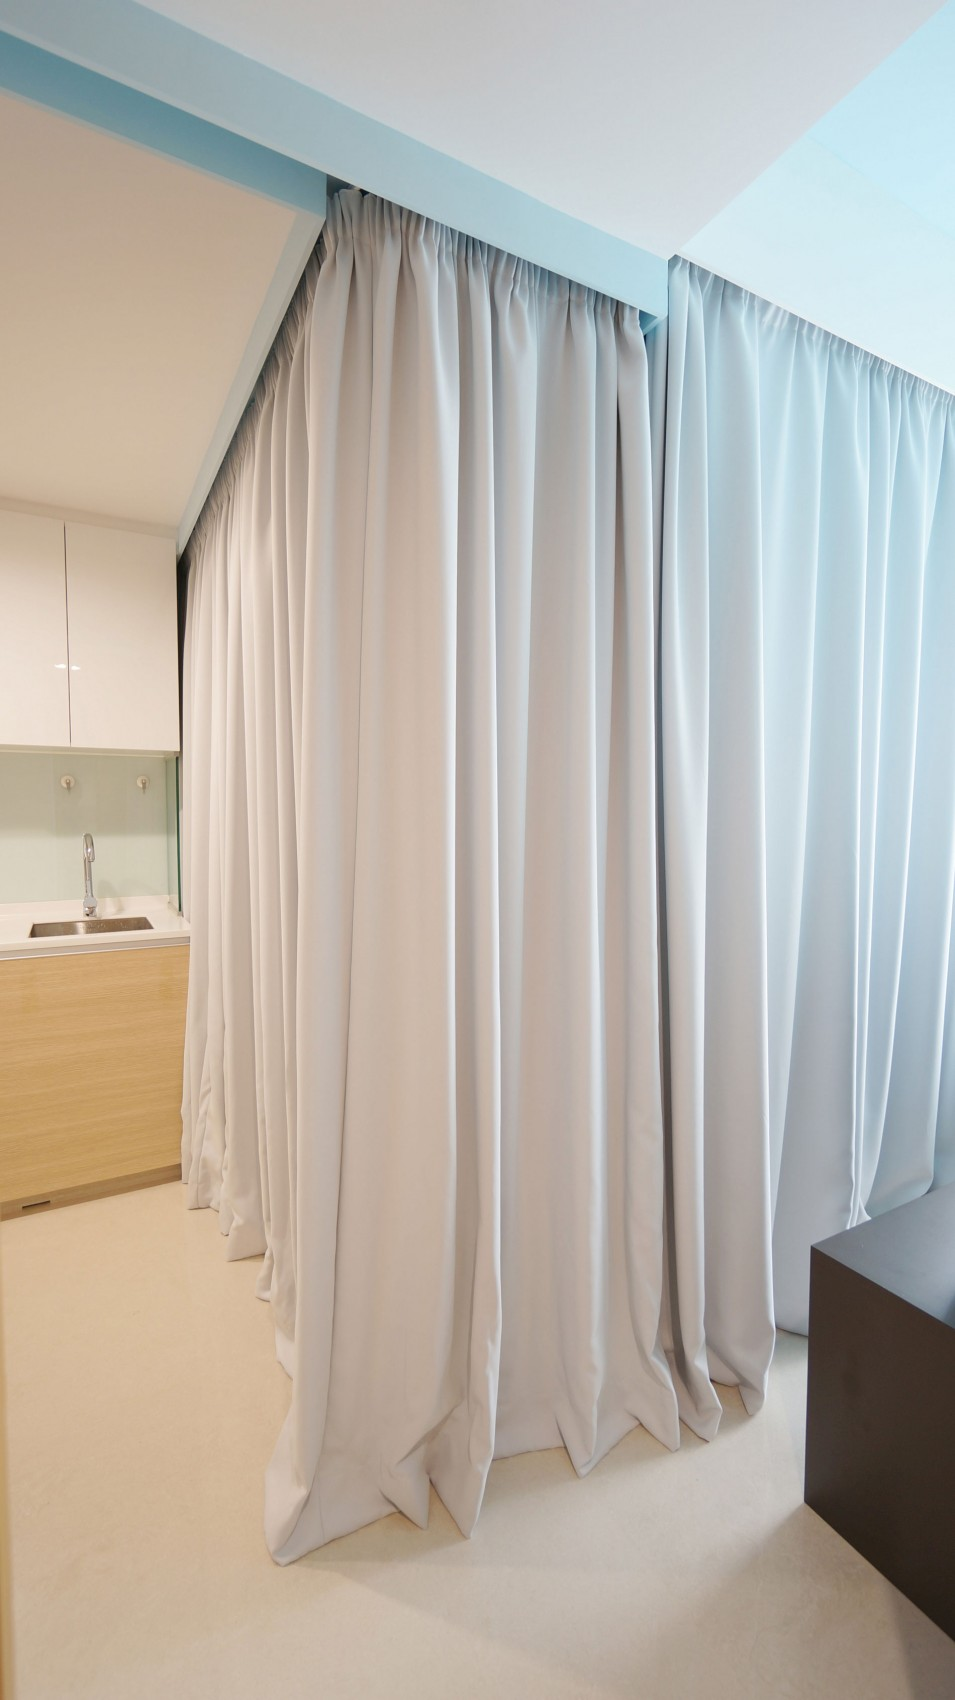 Tiny Apartment Uses Fabric Curtains To Divide Its Spaces